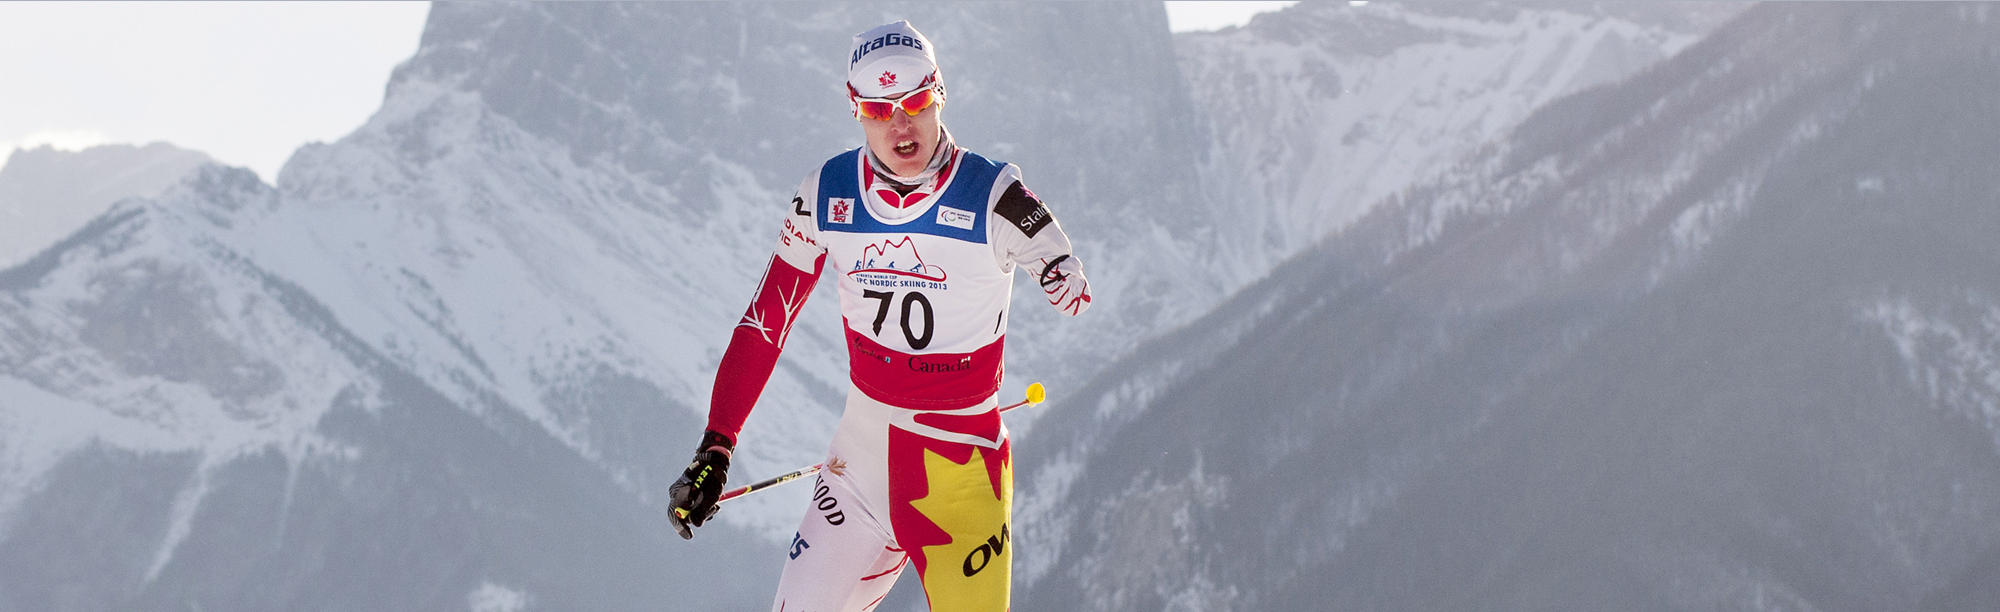 IPC World Cup Athlete Information